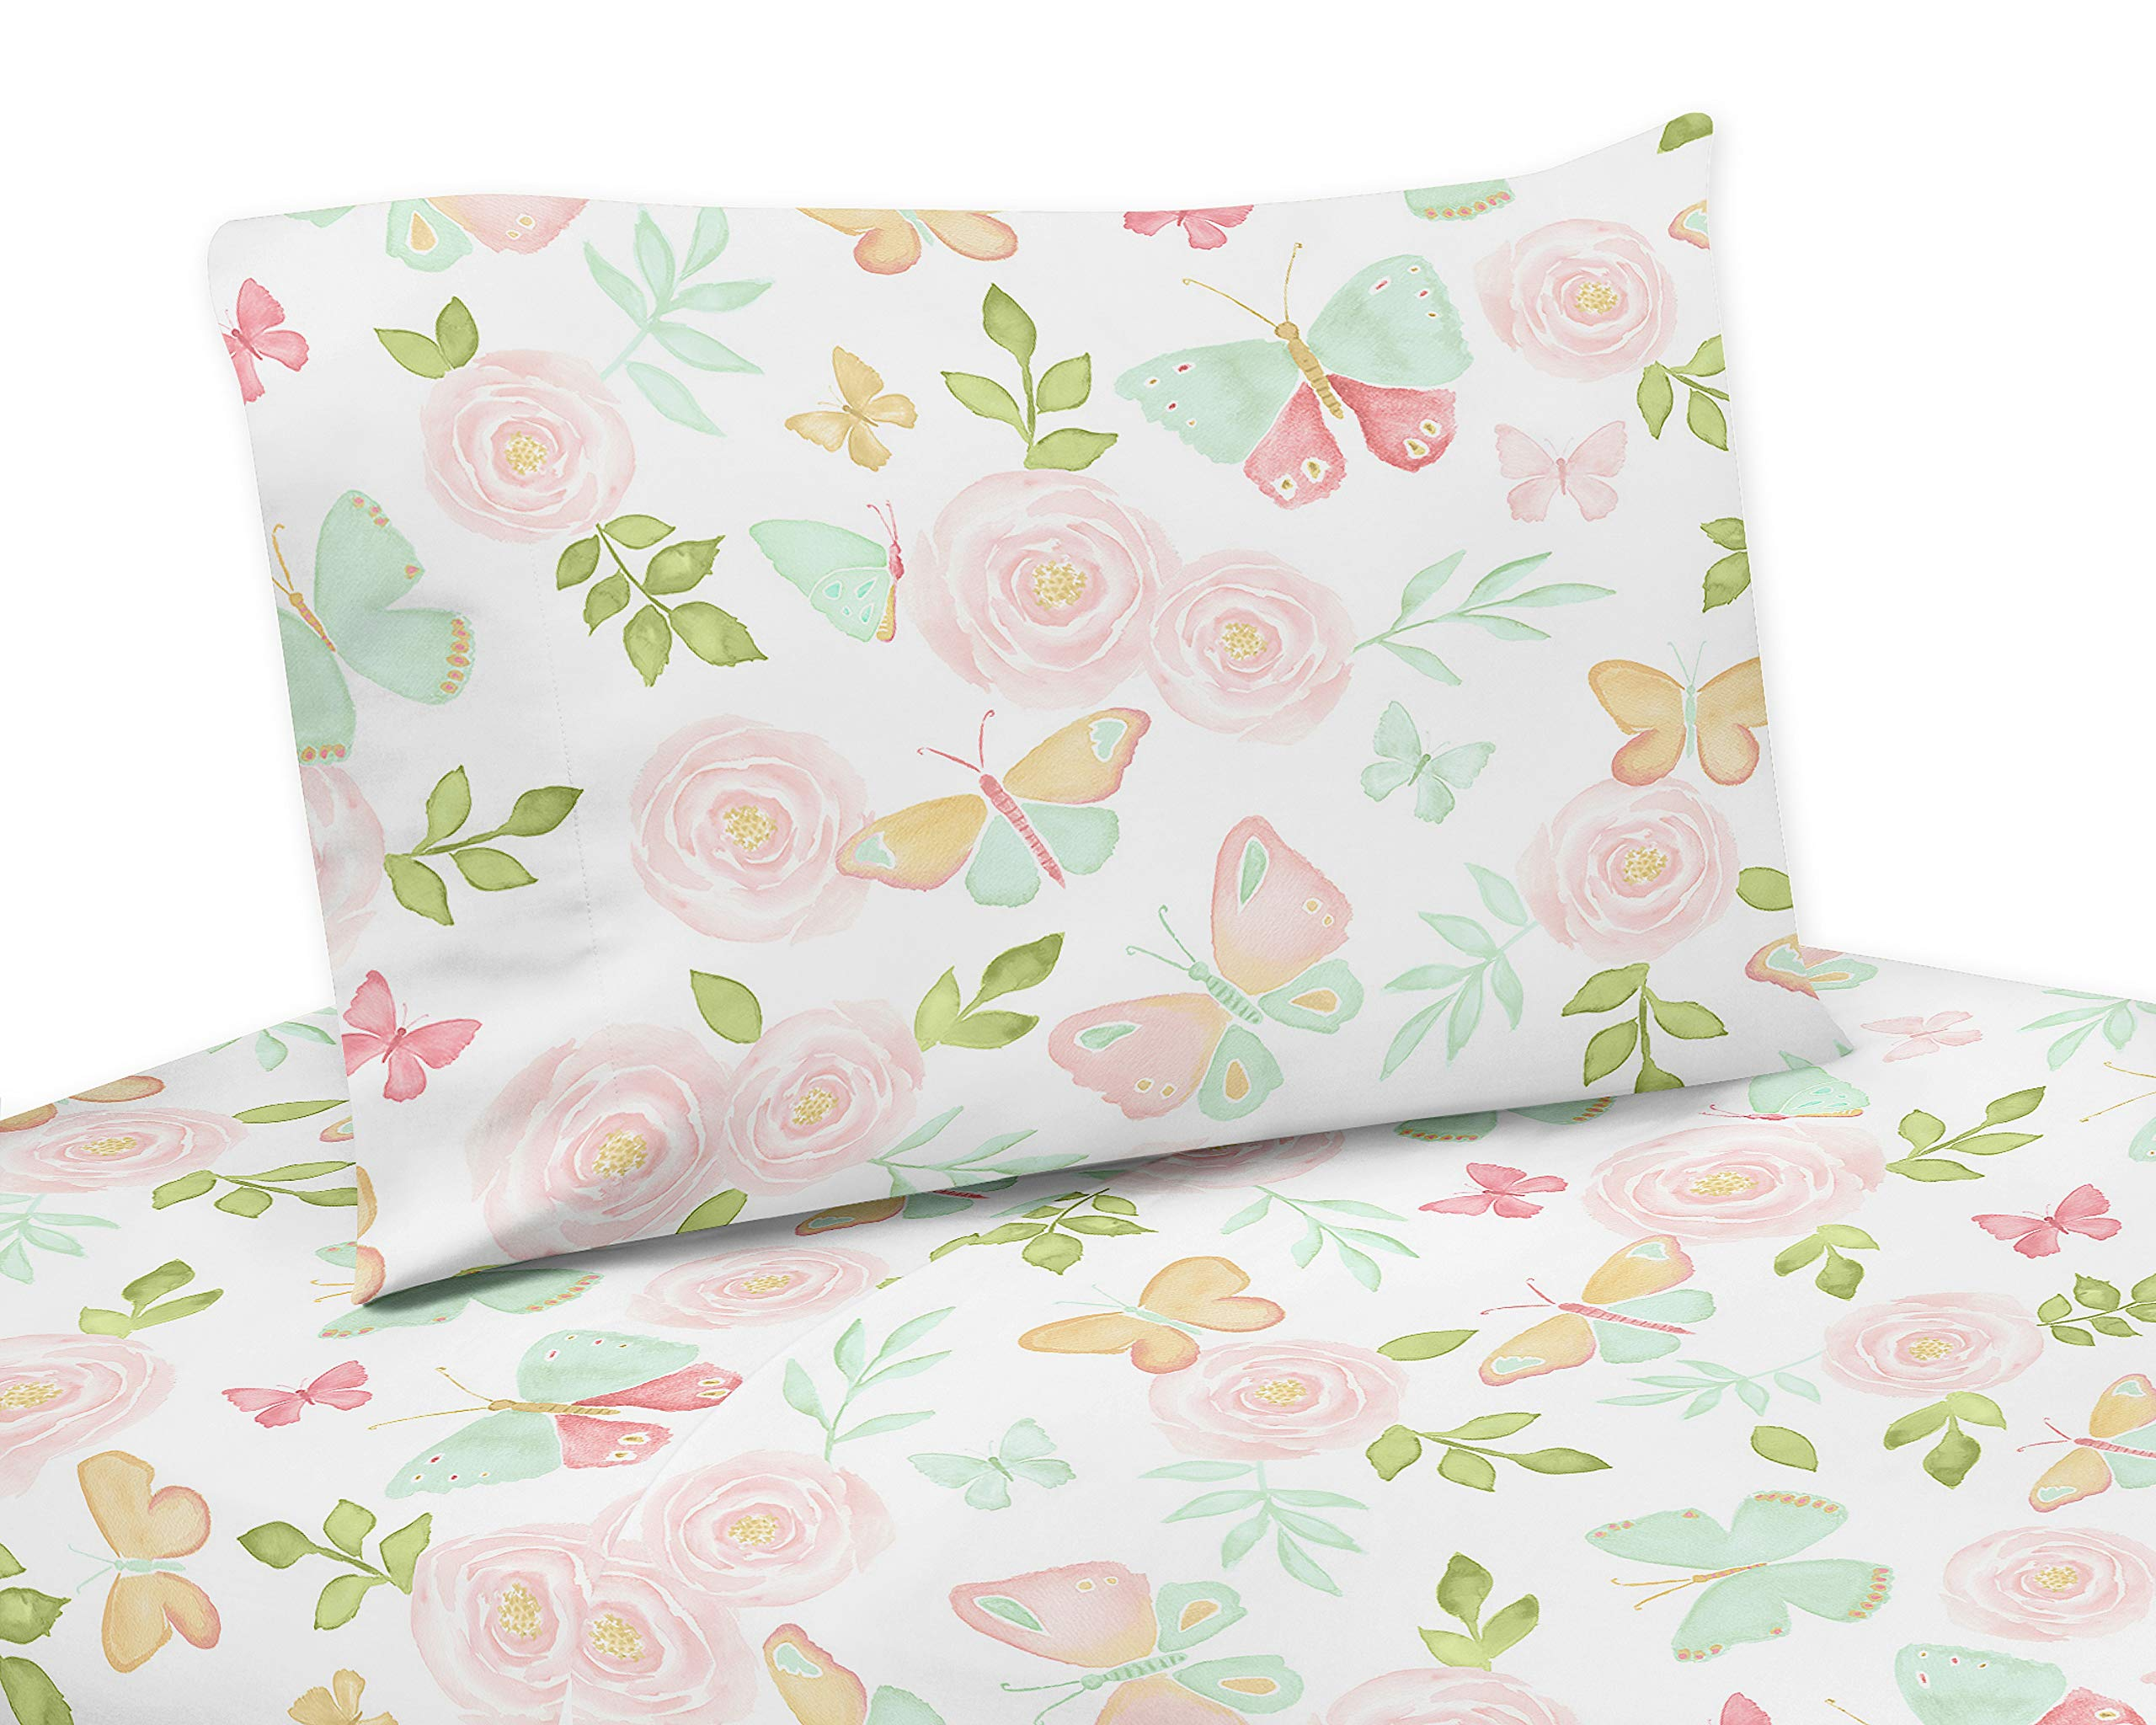 Sweet Jojo Designs Blush Pink, Mint and White Watercolor Rose Twin Sheet Butterfly Floral Collection - 3 Piece Set, Green, Gold